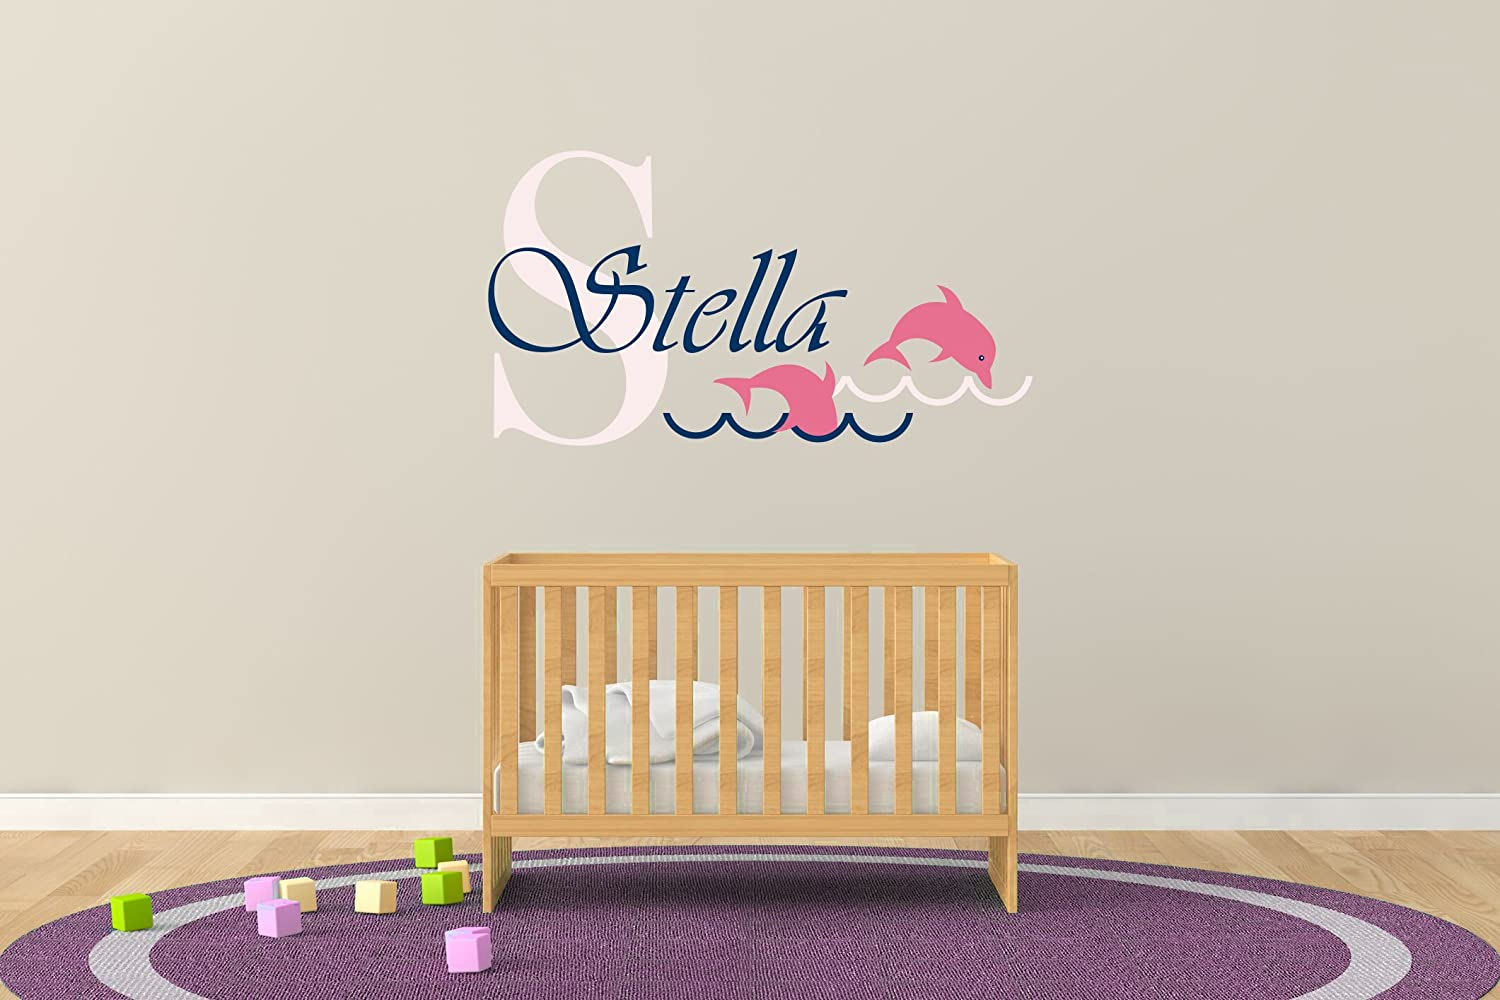 Custom Name & Initial Dolphins And Waves - Animal Series - Baby Girl - Nursery Wall Decal For Baby Rom Decorations - Mural Wall Decal Sticker For Home Children's Bedroom (R36) (Wide 22